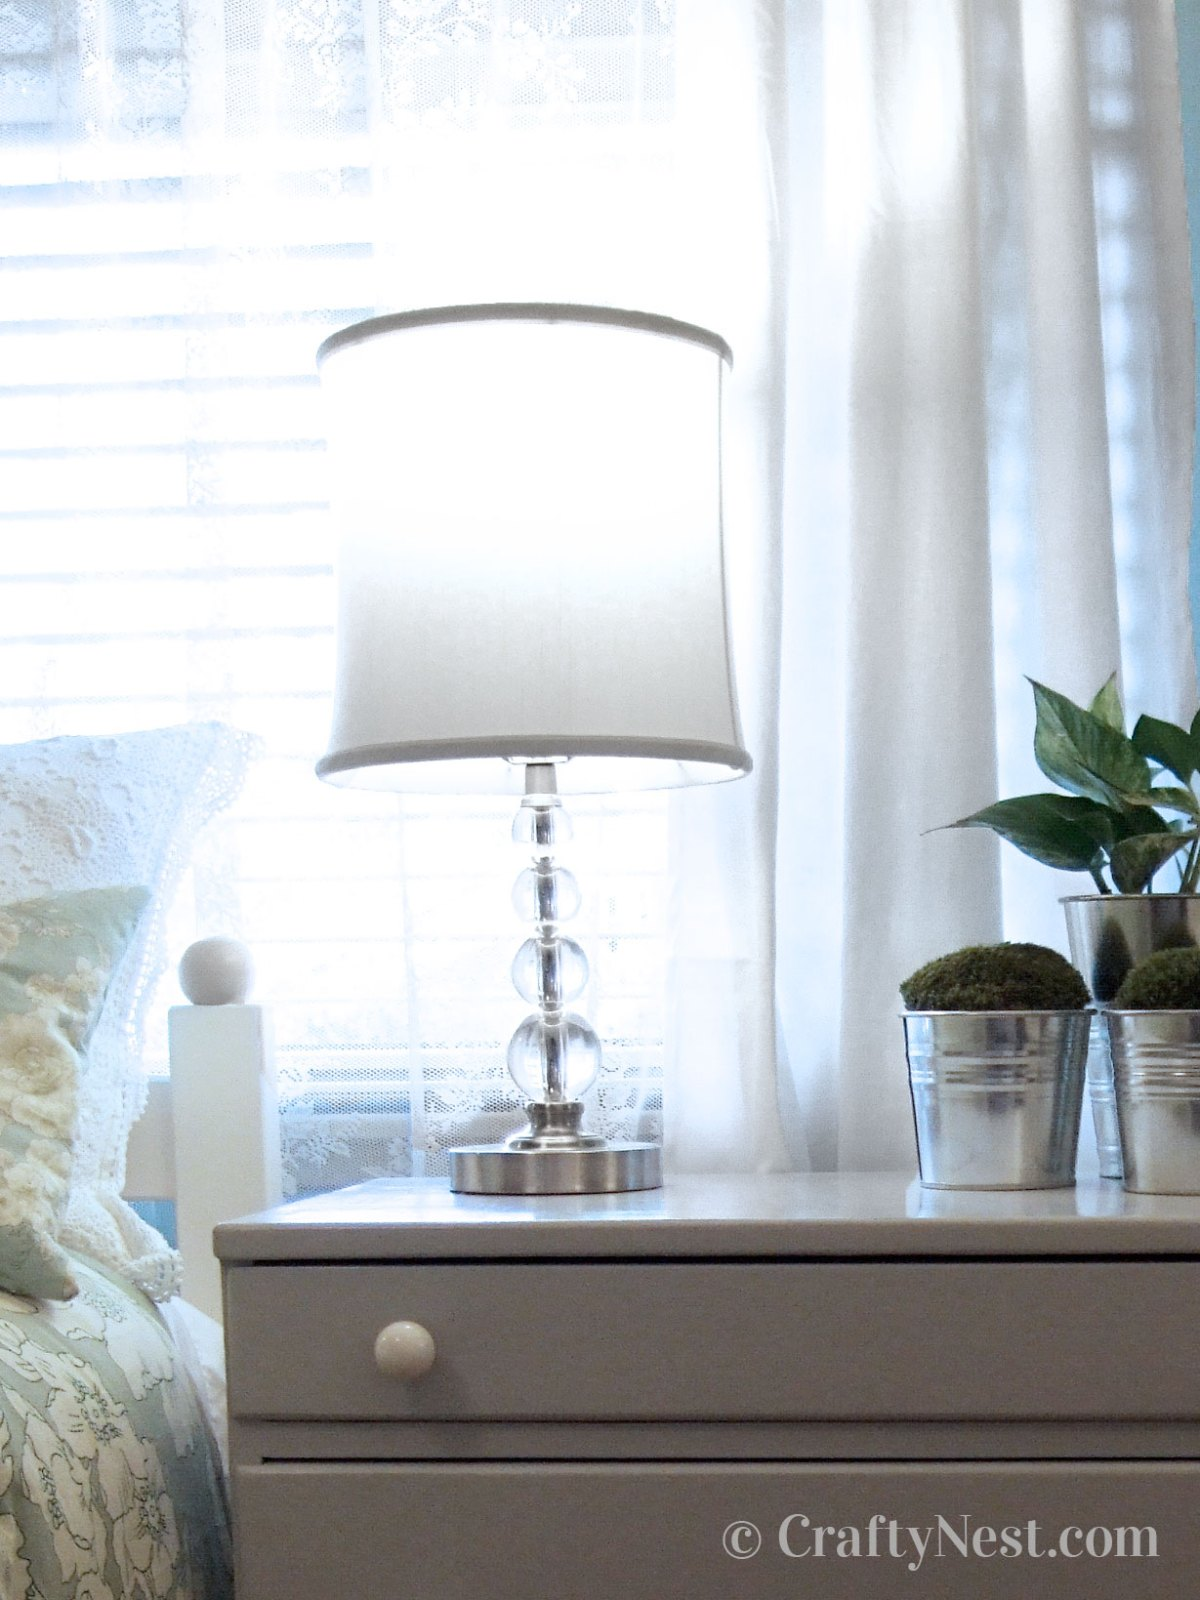 Small table lamp on dresser, photo